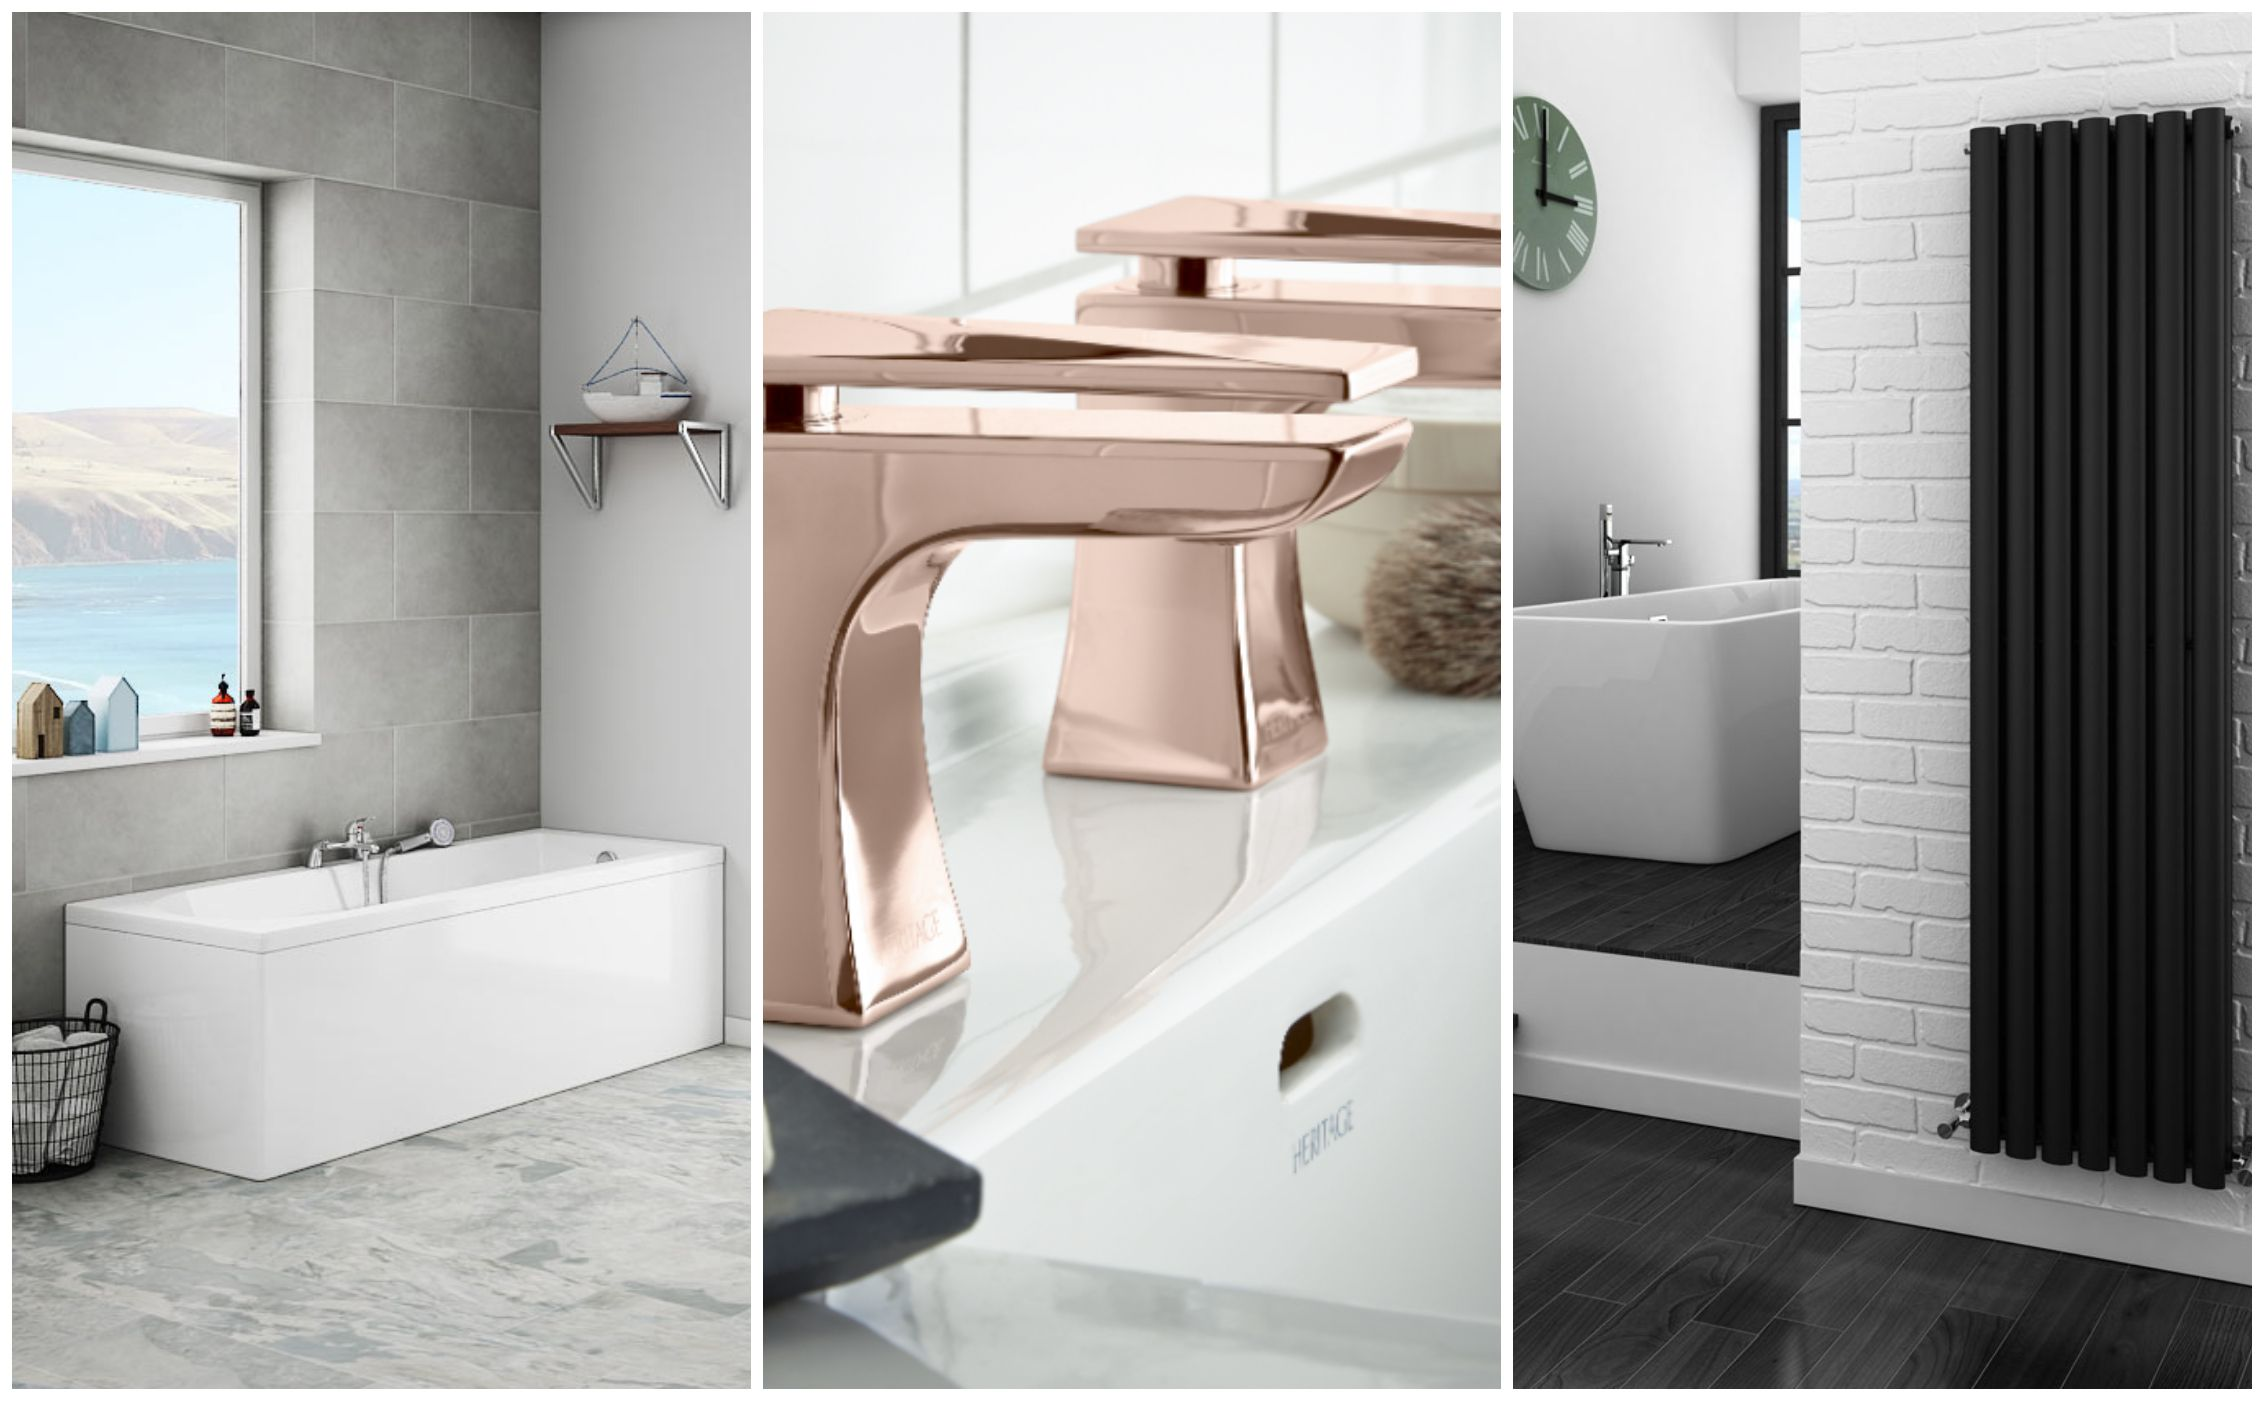 Top Bathroom Trends Of 2018 So Far - Modern Bathroom Design Ideas